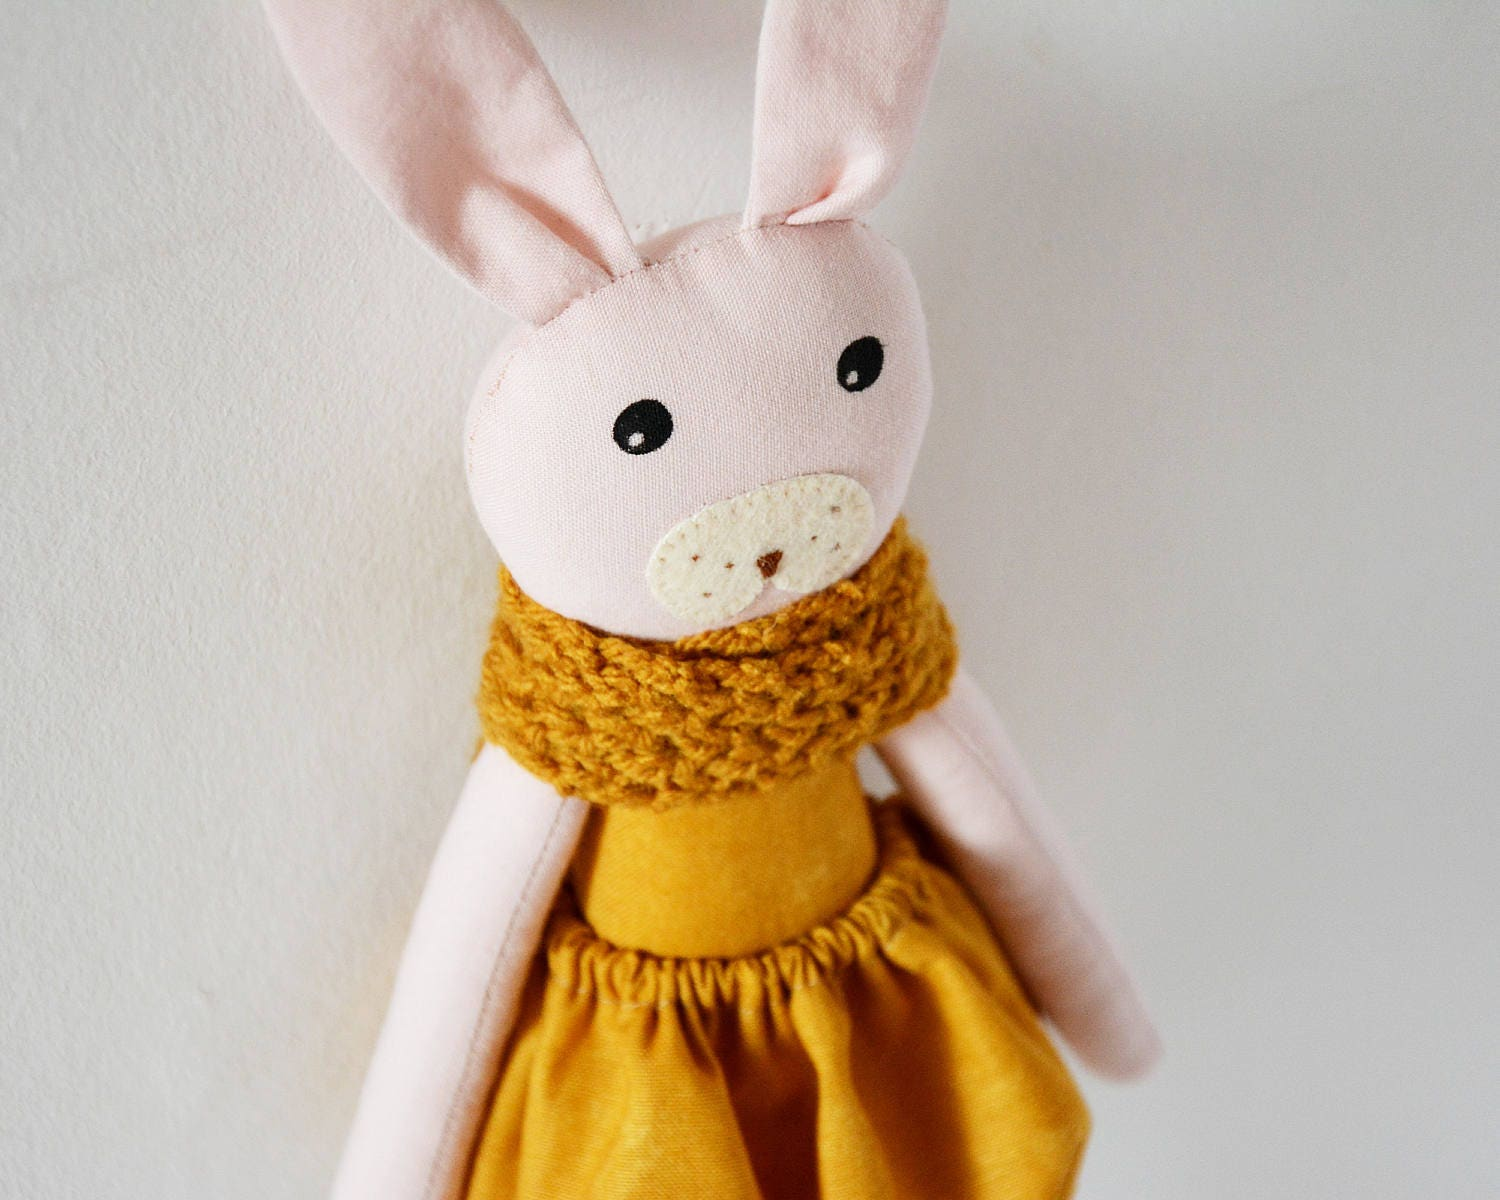 Soft toy stuffed toy animal rag doll cloth doll heirloom doll gift for kidsgift for baby Easter gift pink doll yellow doll